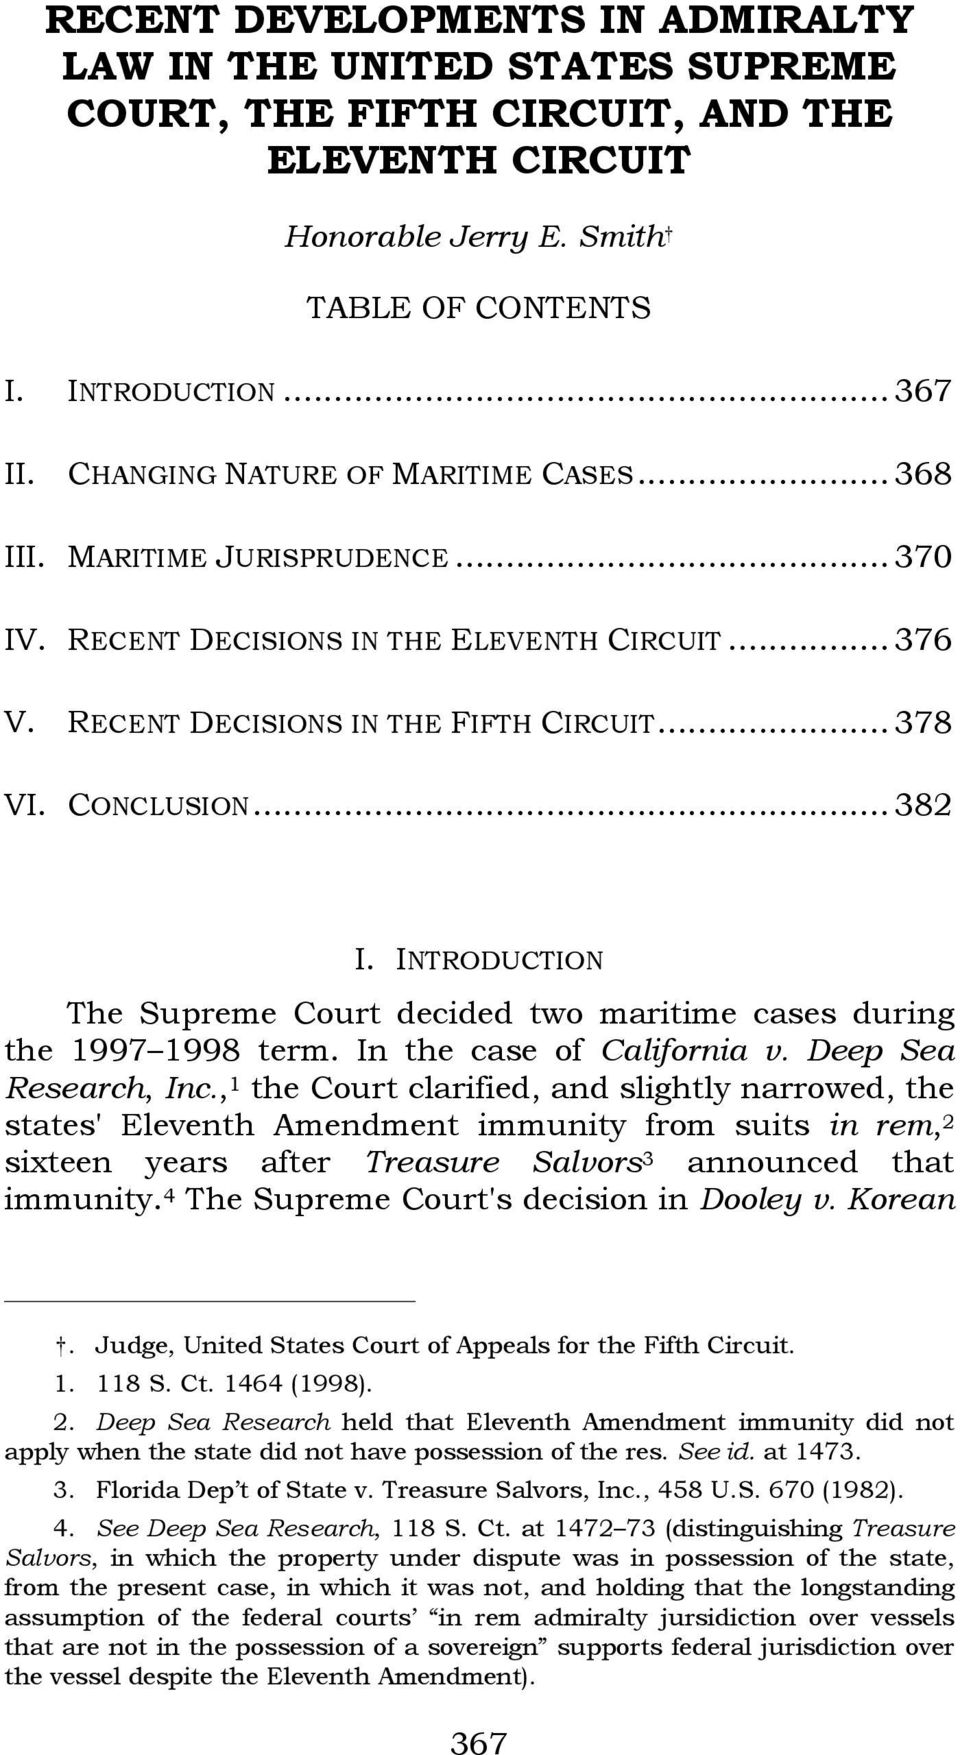 INTRODUCTION The Supreme Court decided two maritime cases during the 1997 1998 term. In the case of California v. Deep Sea Research, Inc.